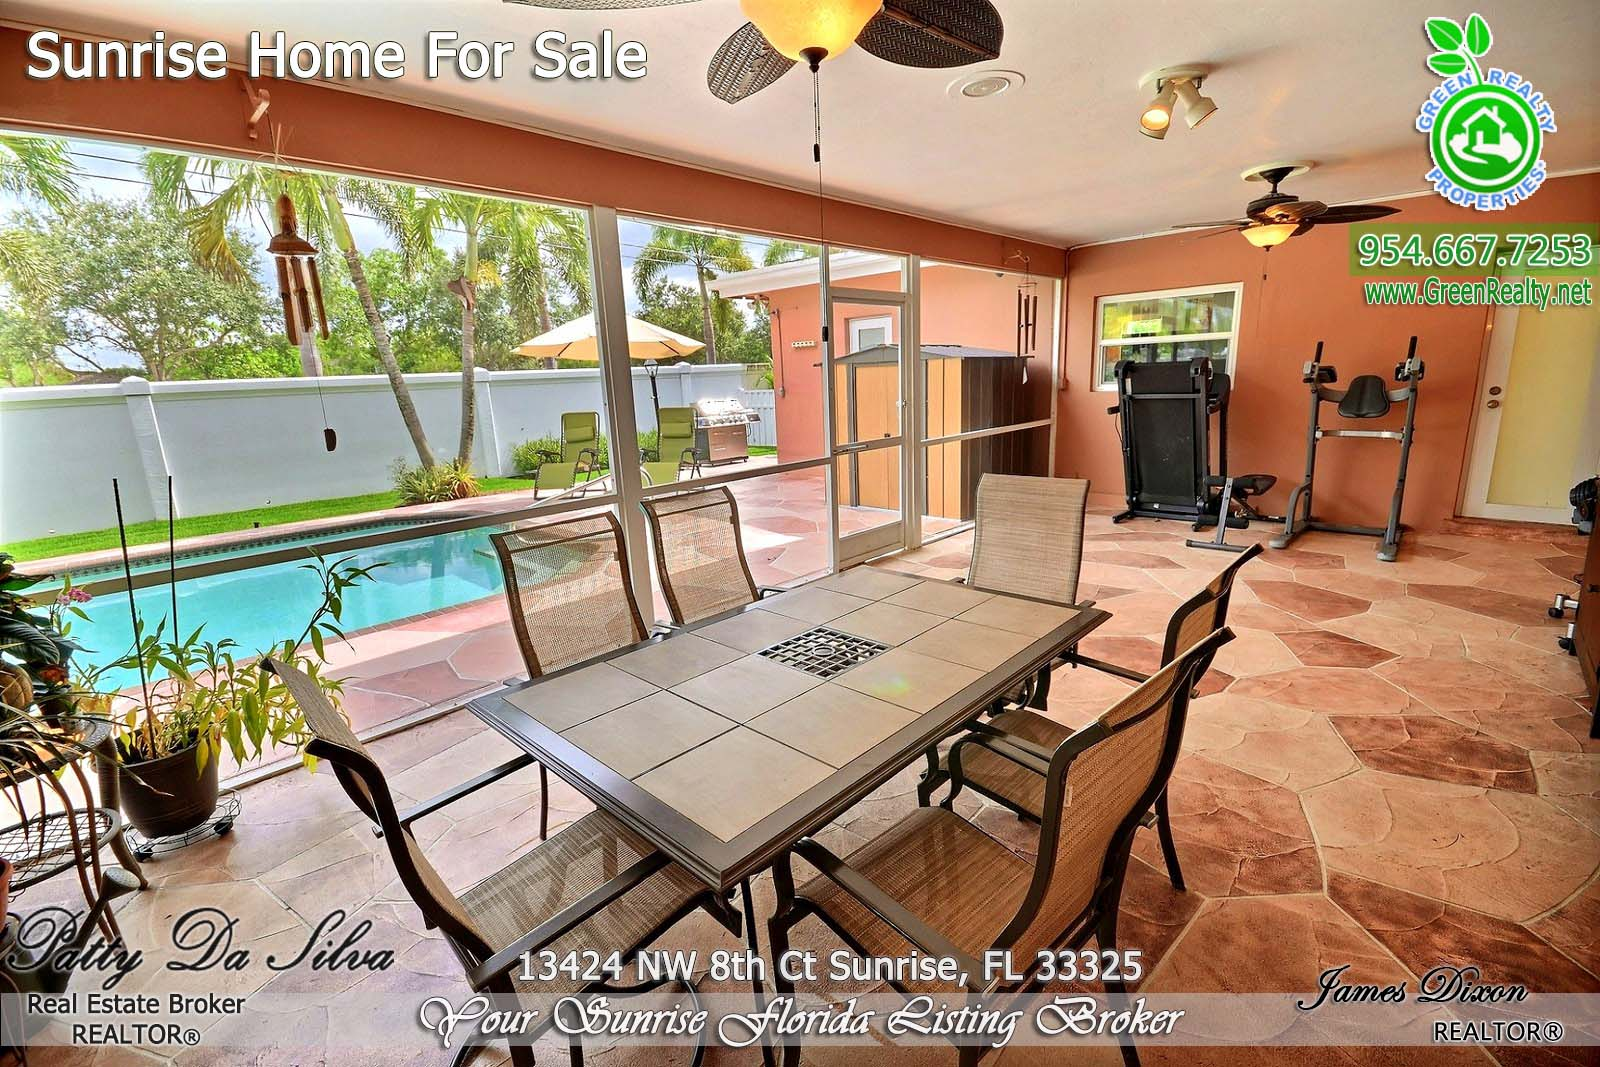 26 Patty Da Silva SELLS Sunrise Florida Homes (5)